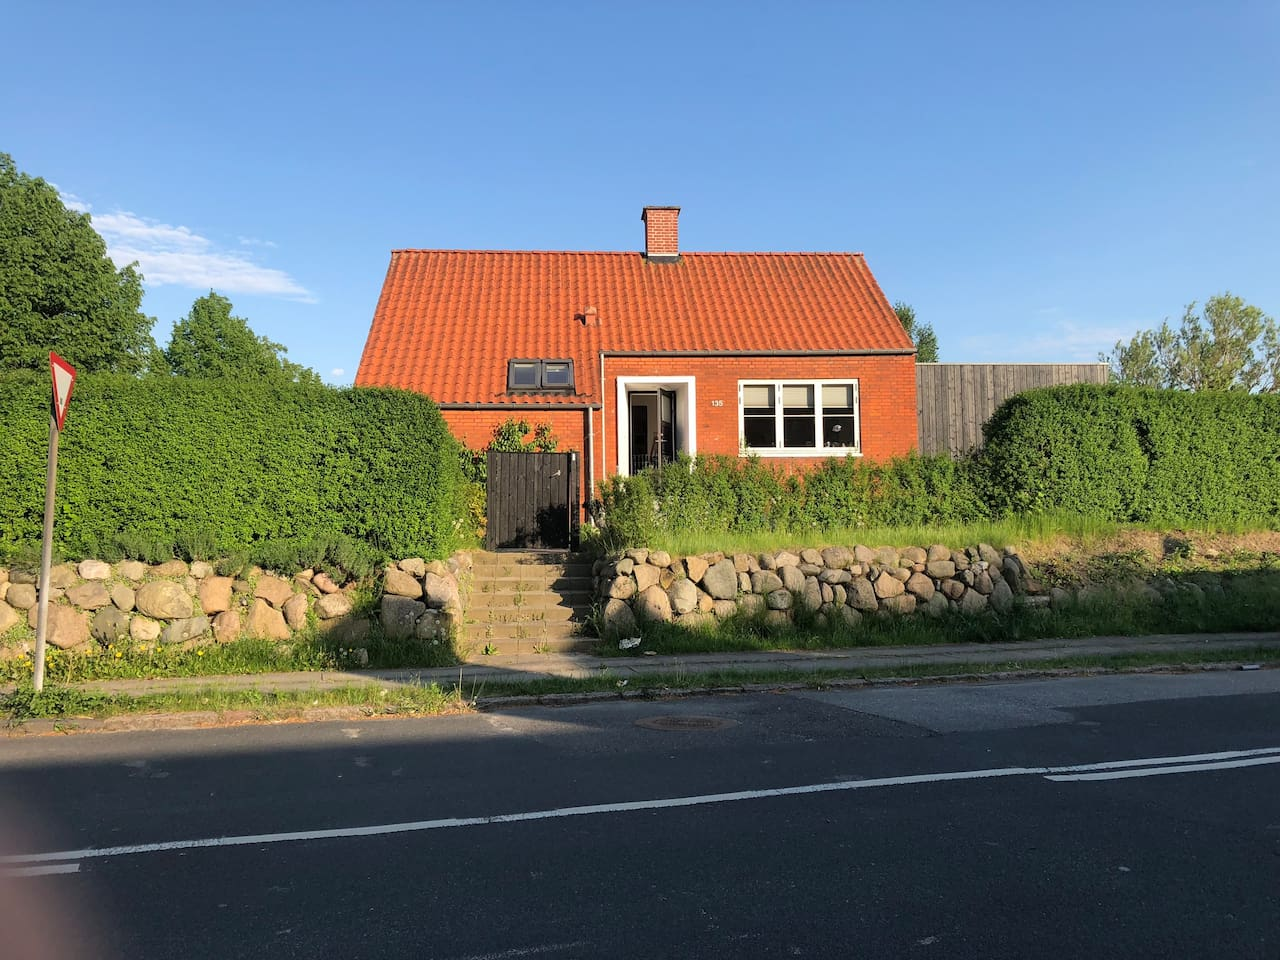 View of the house from Dyrhøjvej. The house is situated on the corner of Rødegårdsvej and Dyrhøjvej. Parking in our driveway or on Dyrhøjvej.